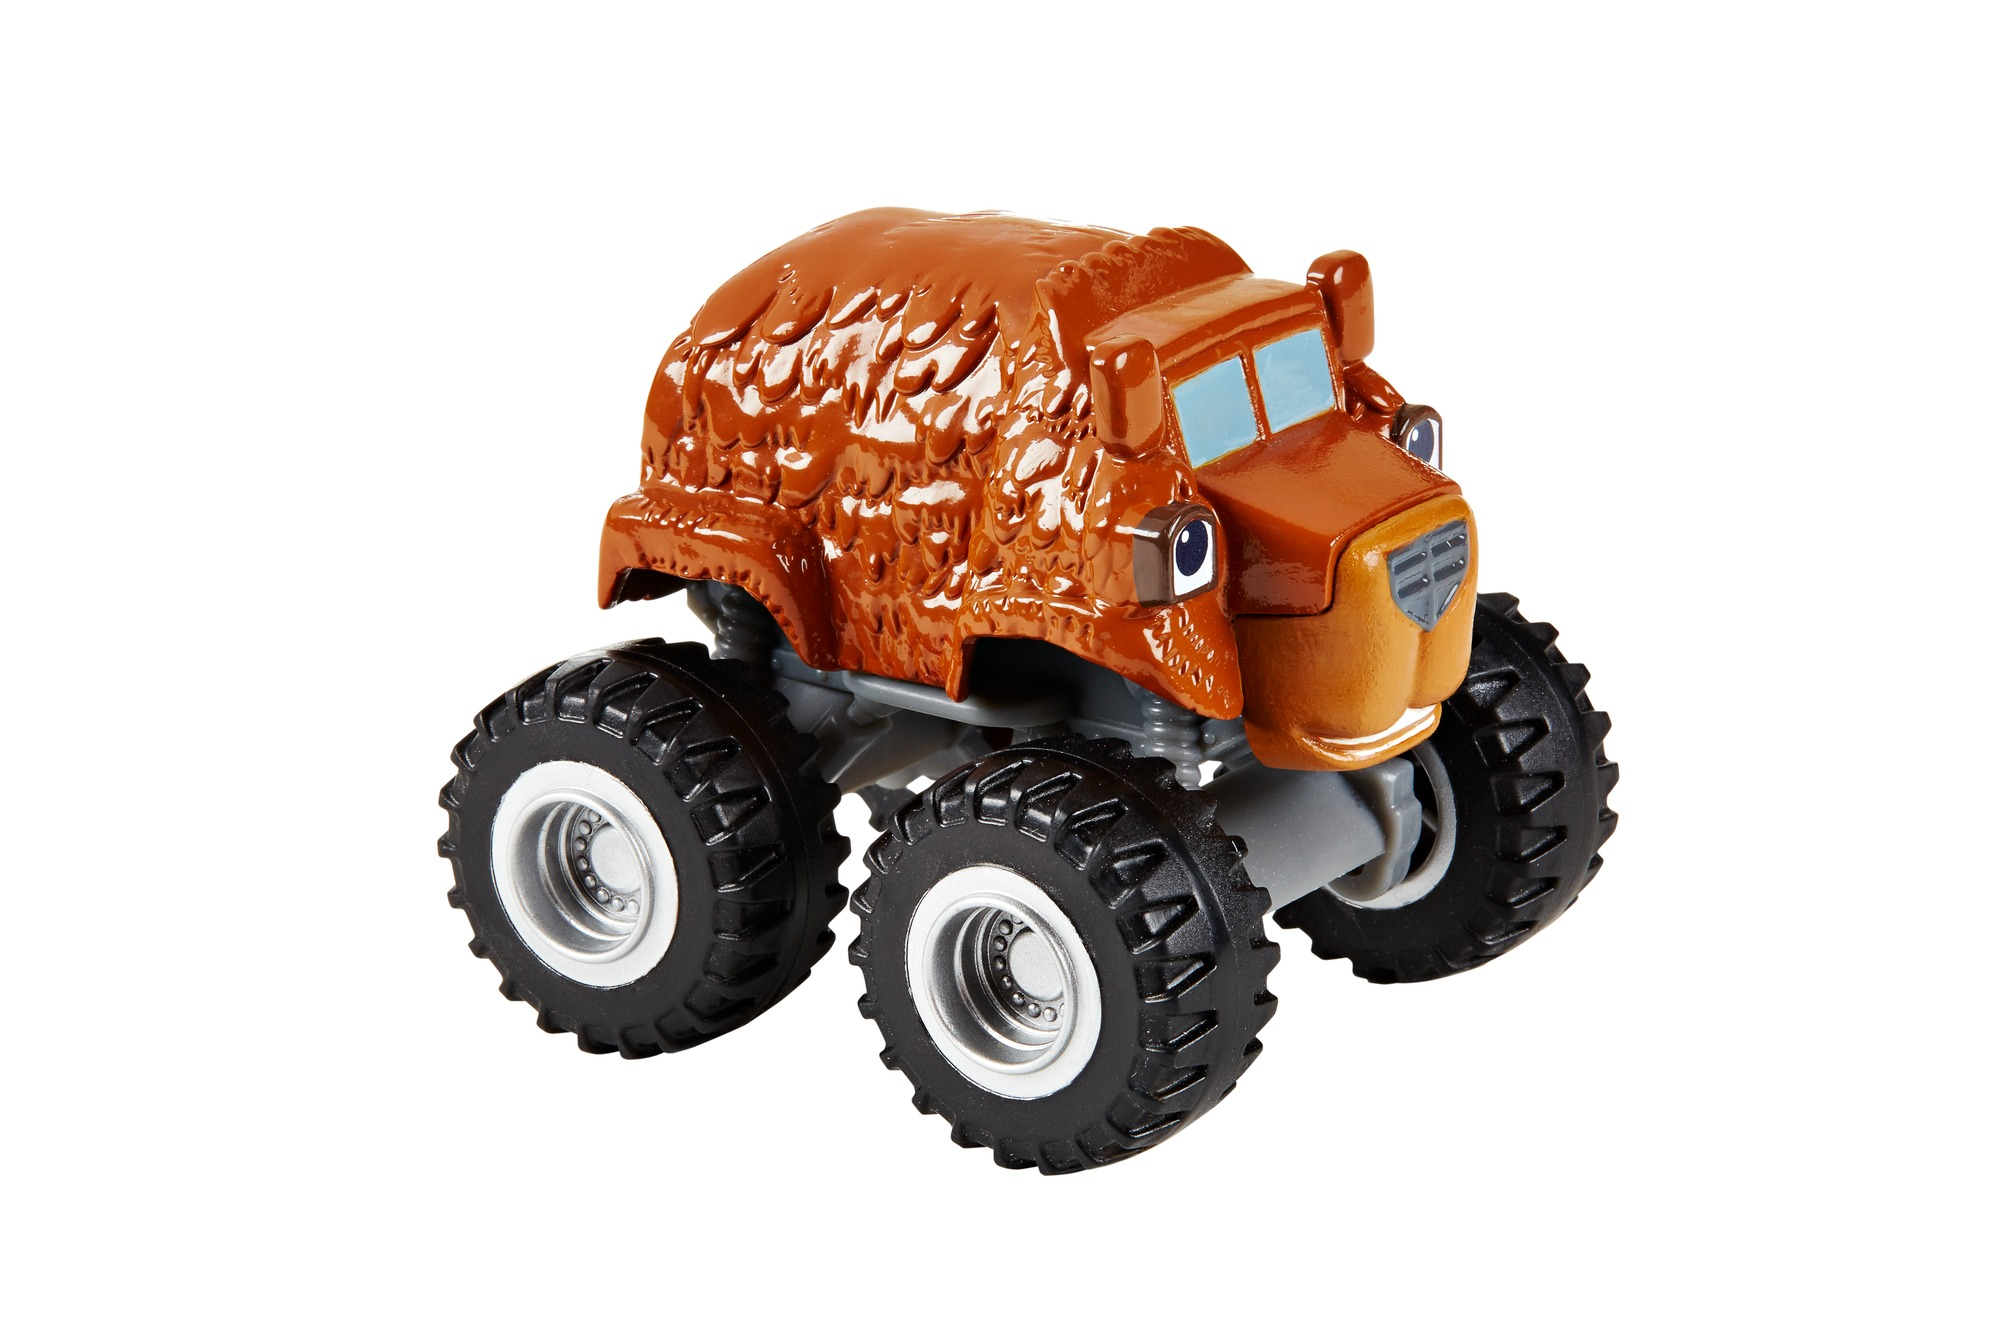 Nickelodeon Blaze and the Monster Machines Grizzly Bear Truck by FISHER PRICE